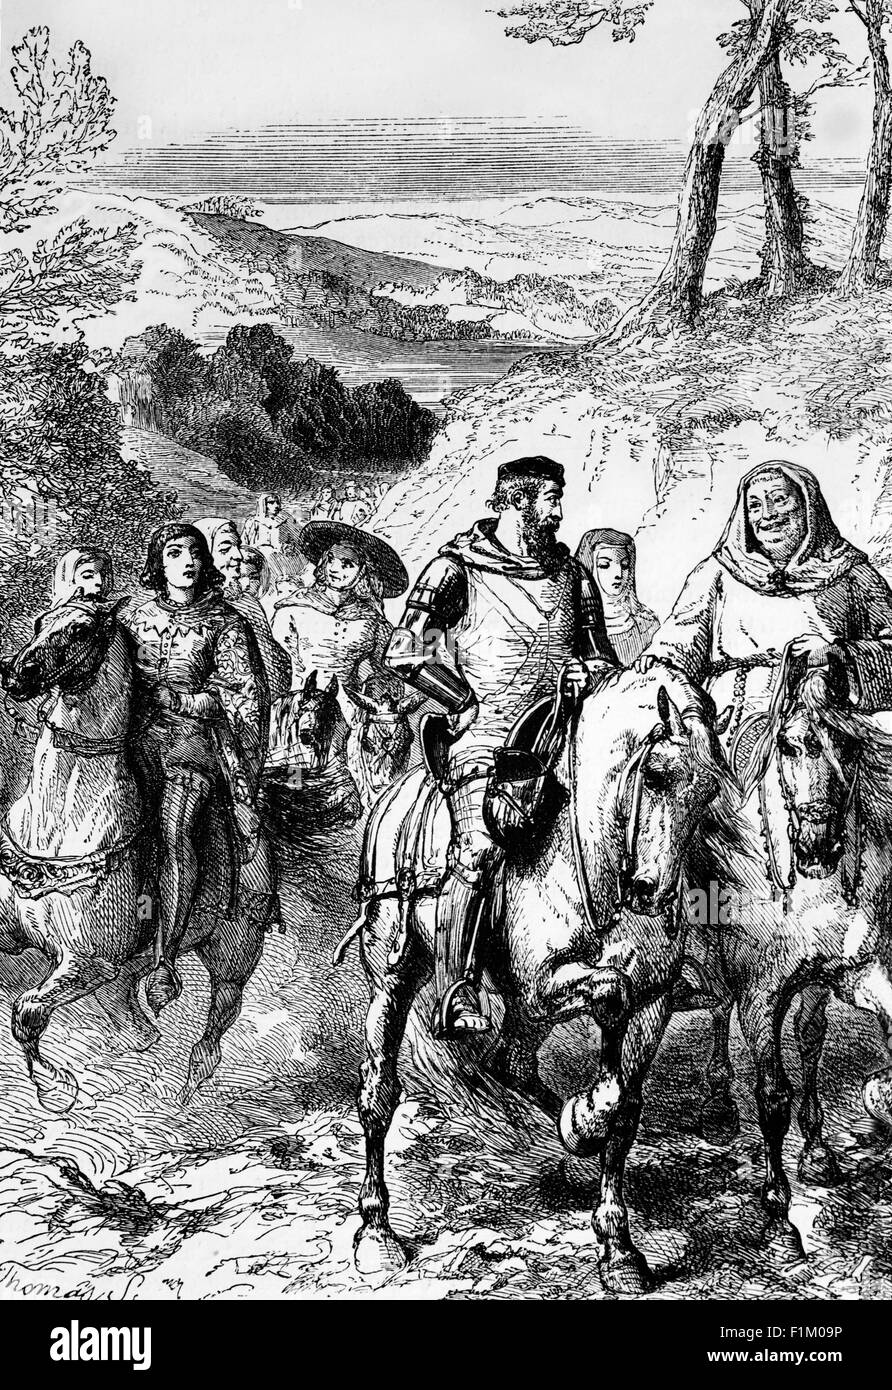 A Scene in Kent from the Canterbury Tales, Written by Geoffrey Chaucer (1328 - 1400) - Stock Image